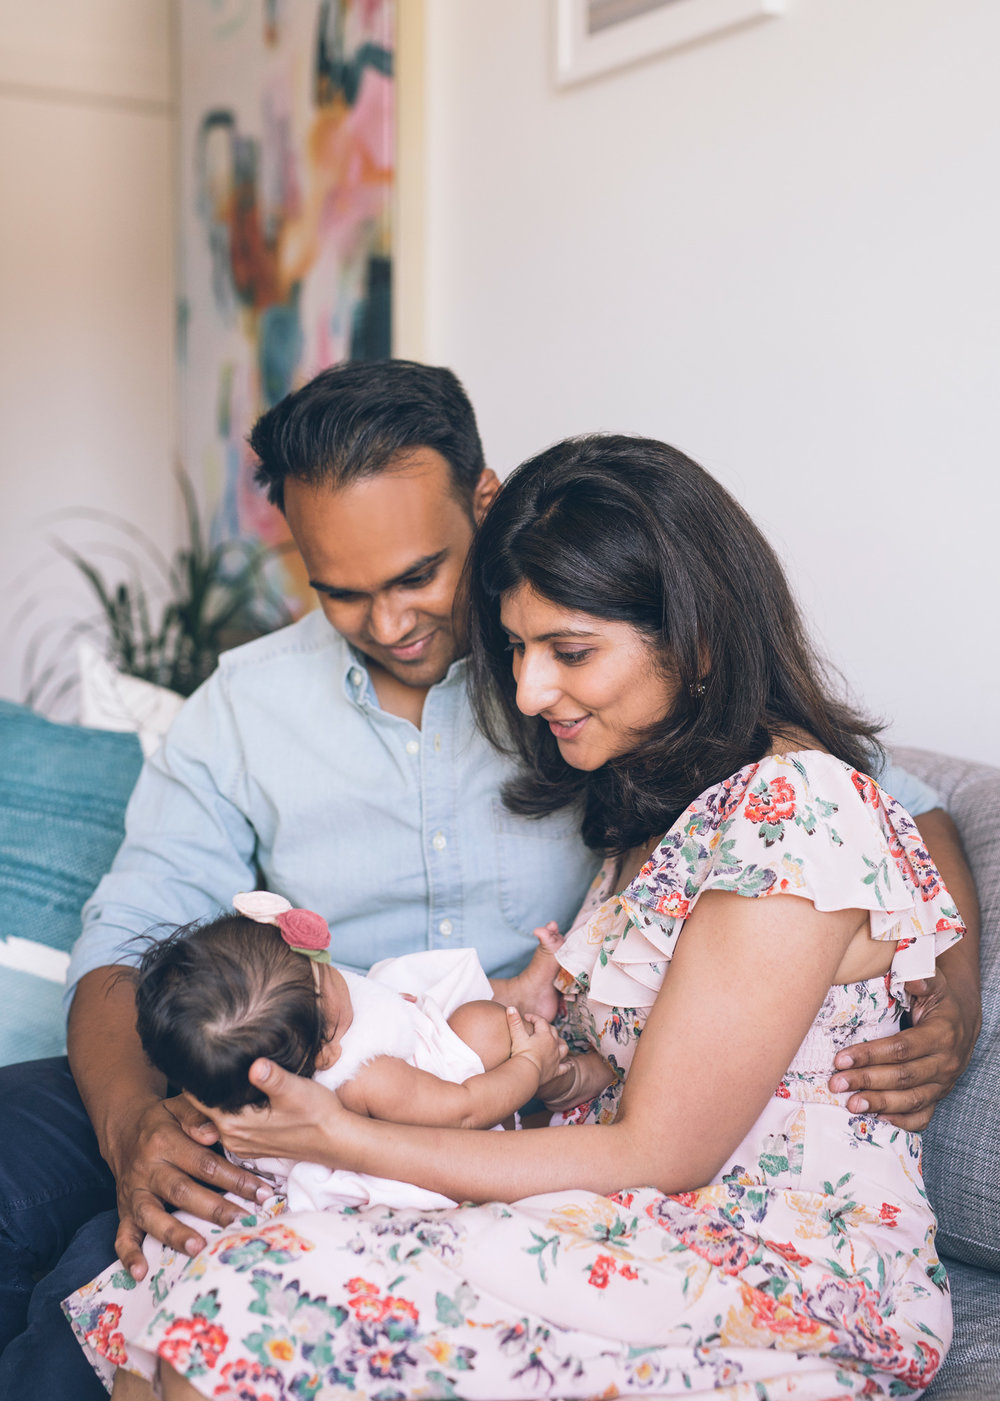 parents-holding-their-baby-girl-in-their-san-francisco-apartment.jpg